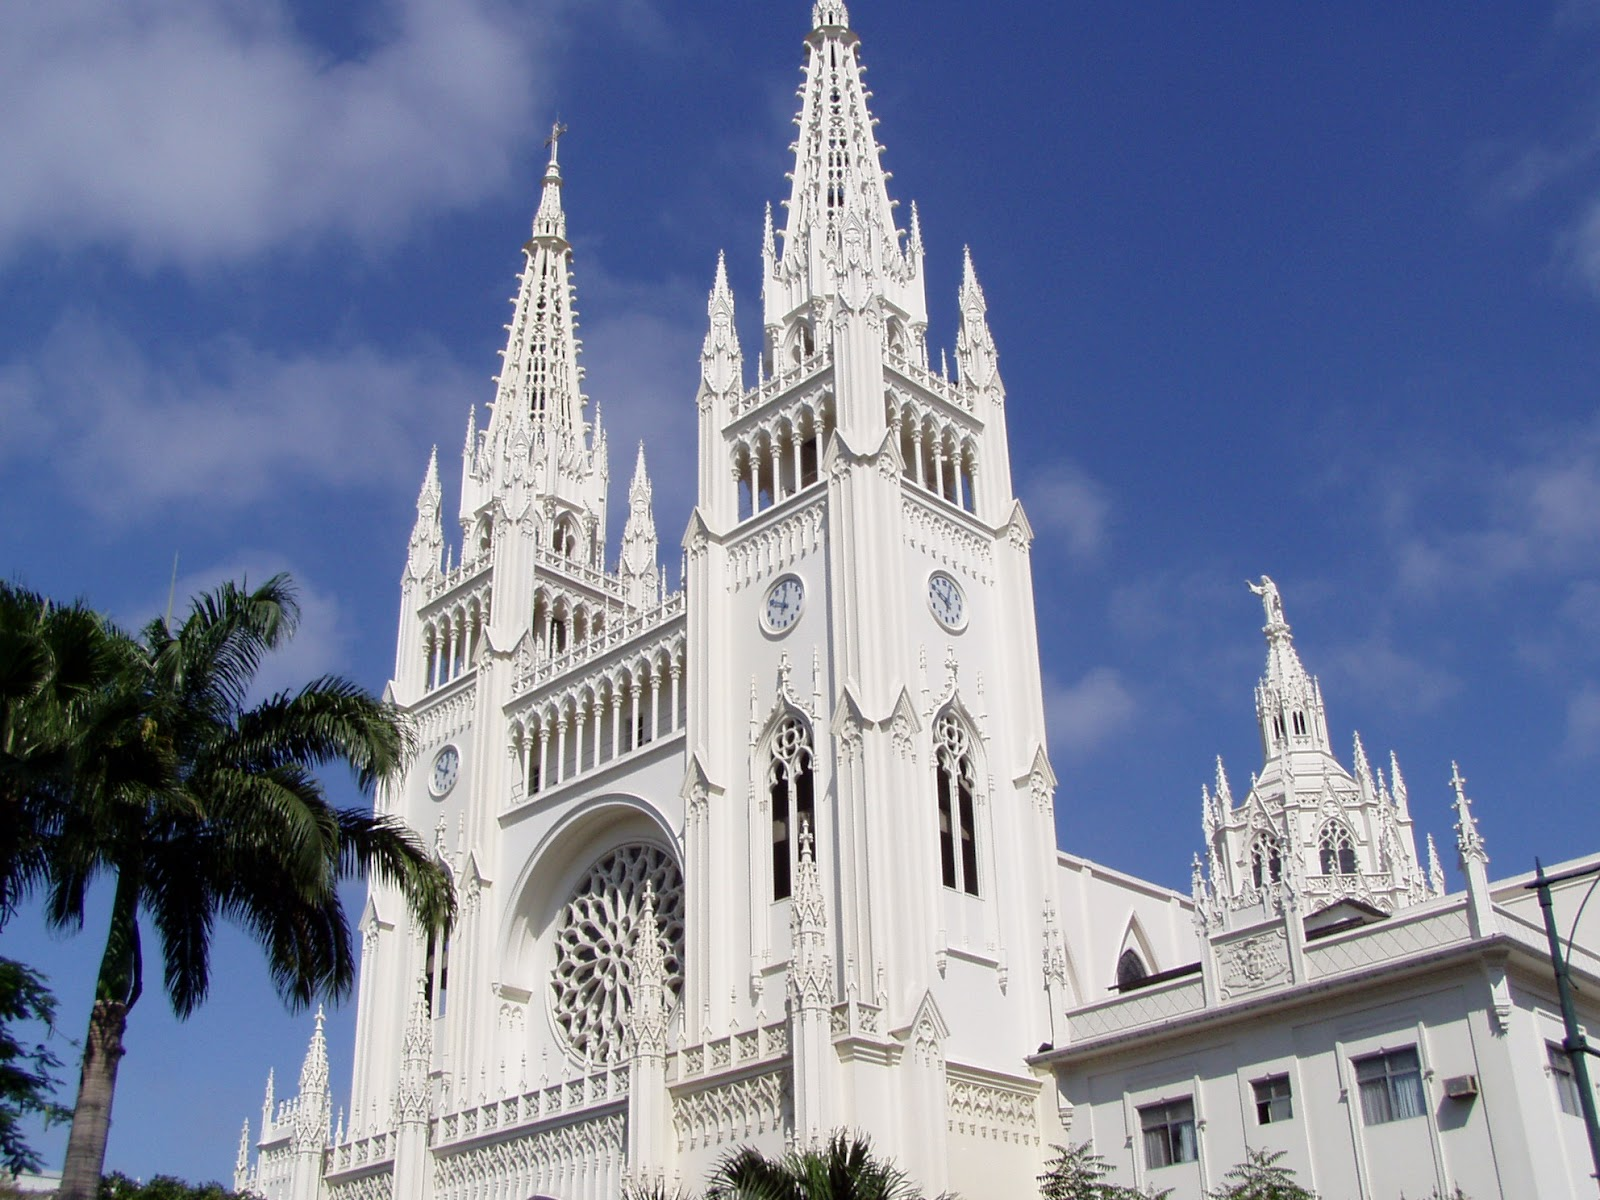 Guayaquil Metropolitan Cathedral white neo-gothic